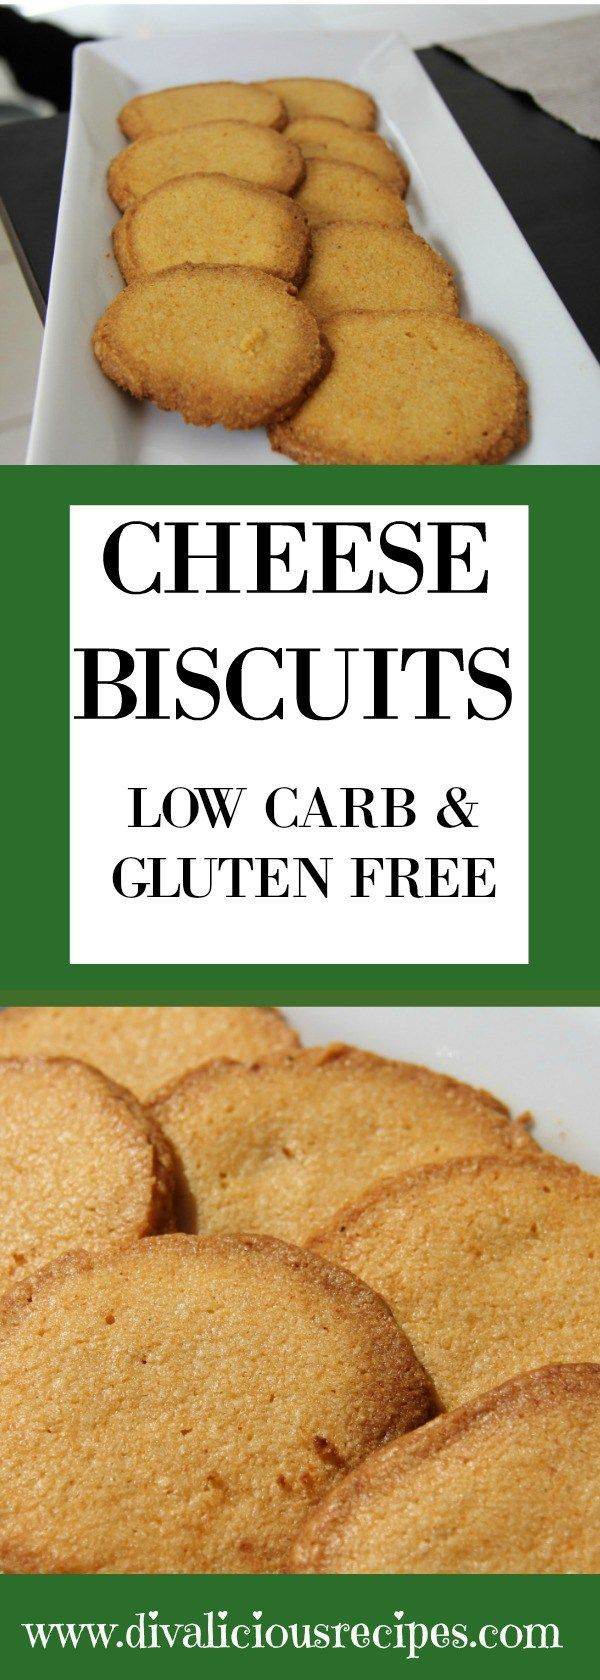 Cheese biscuits that are melt in your mouth savoury biscuits made with almond flour and a good Cheddar cheese. A delicious low carb and gluten free snack.  Recipe - http://divaliciousrecipes.com/2011/11/08/cheese-biscuits-gluten-free/